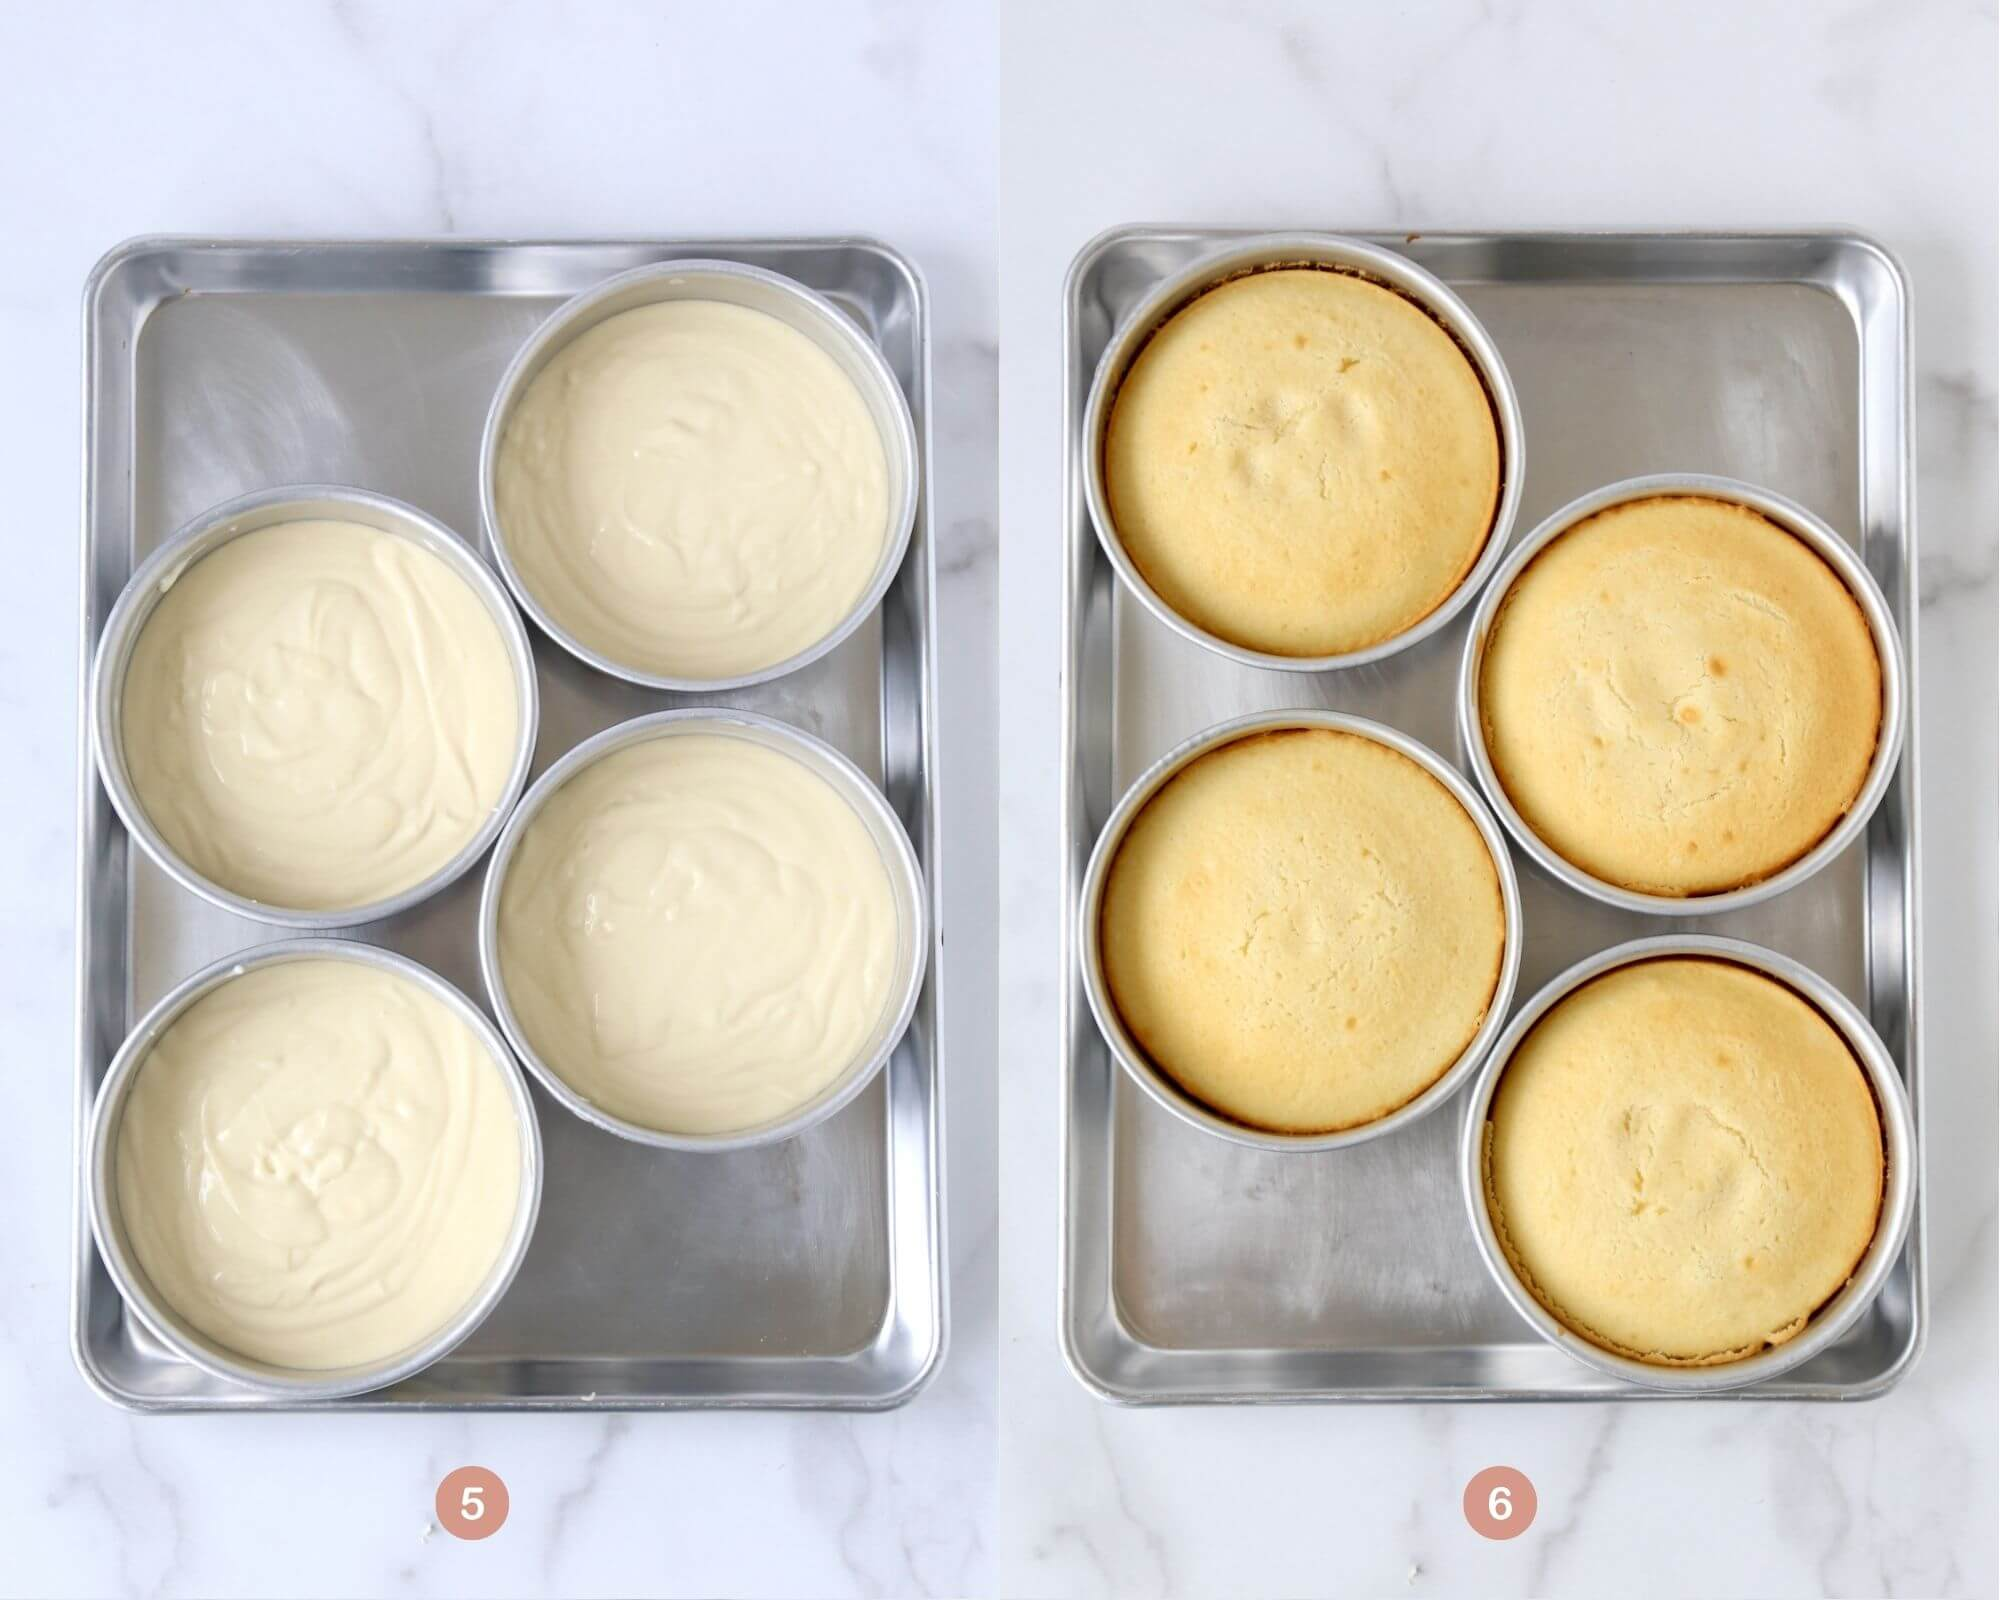 Two photos side by side with one showing cake pans with the cake batter and the other photo showing cake pans with baked cakes.